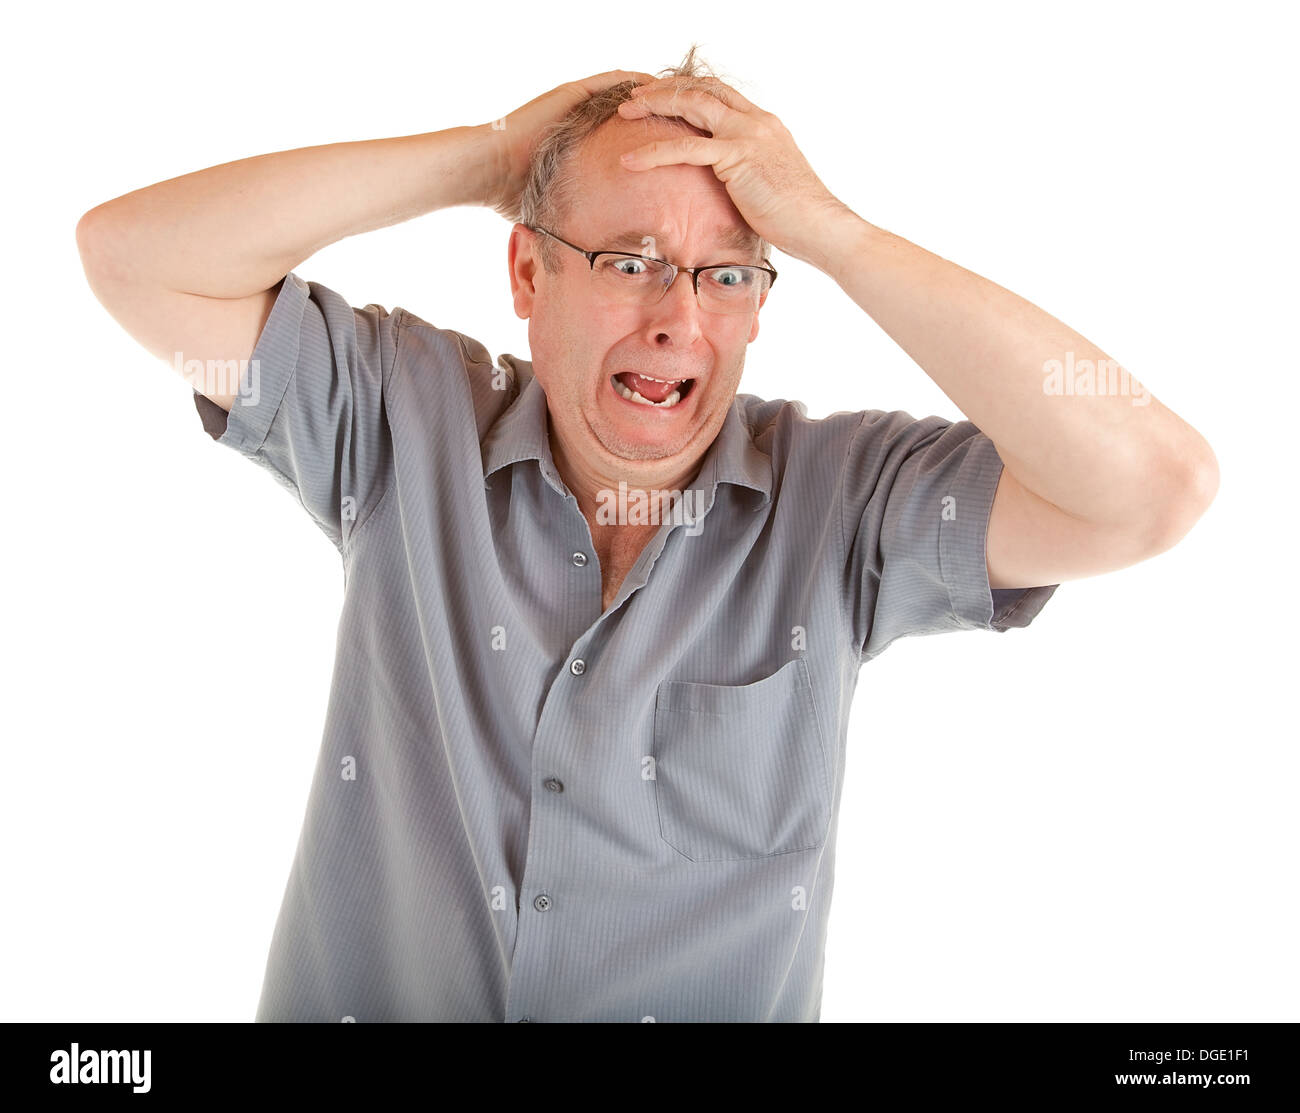 man holding his head in disbelief and shocked just got very bad news